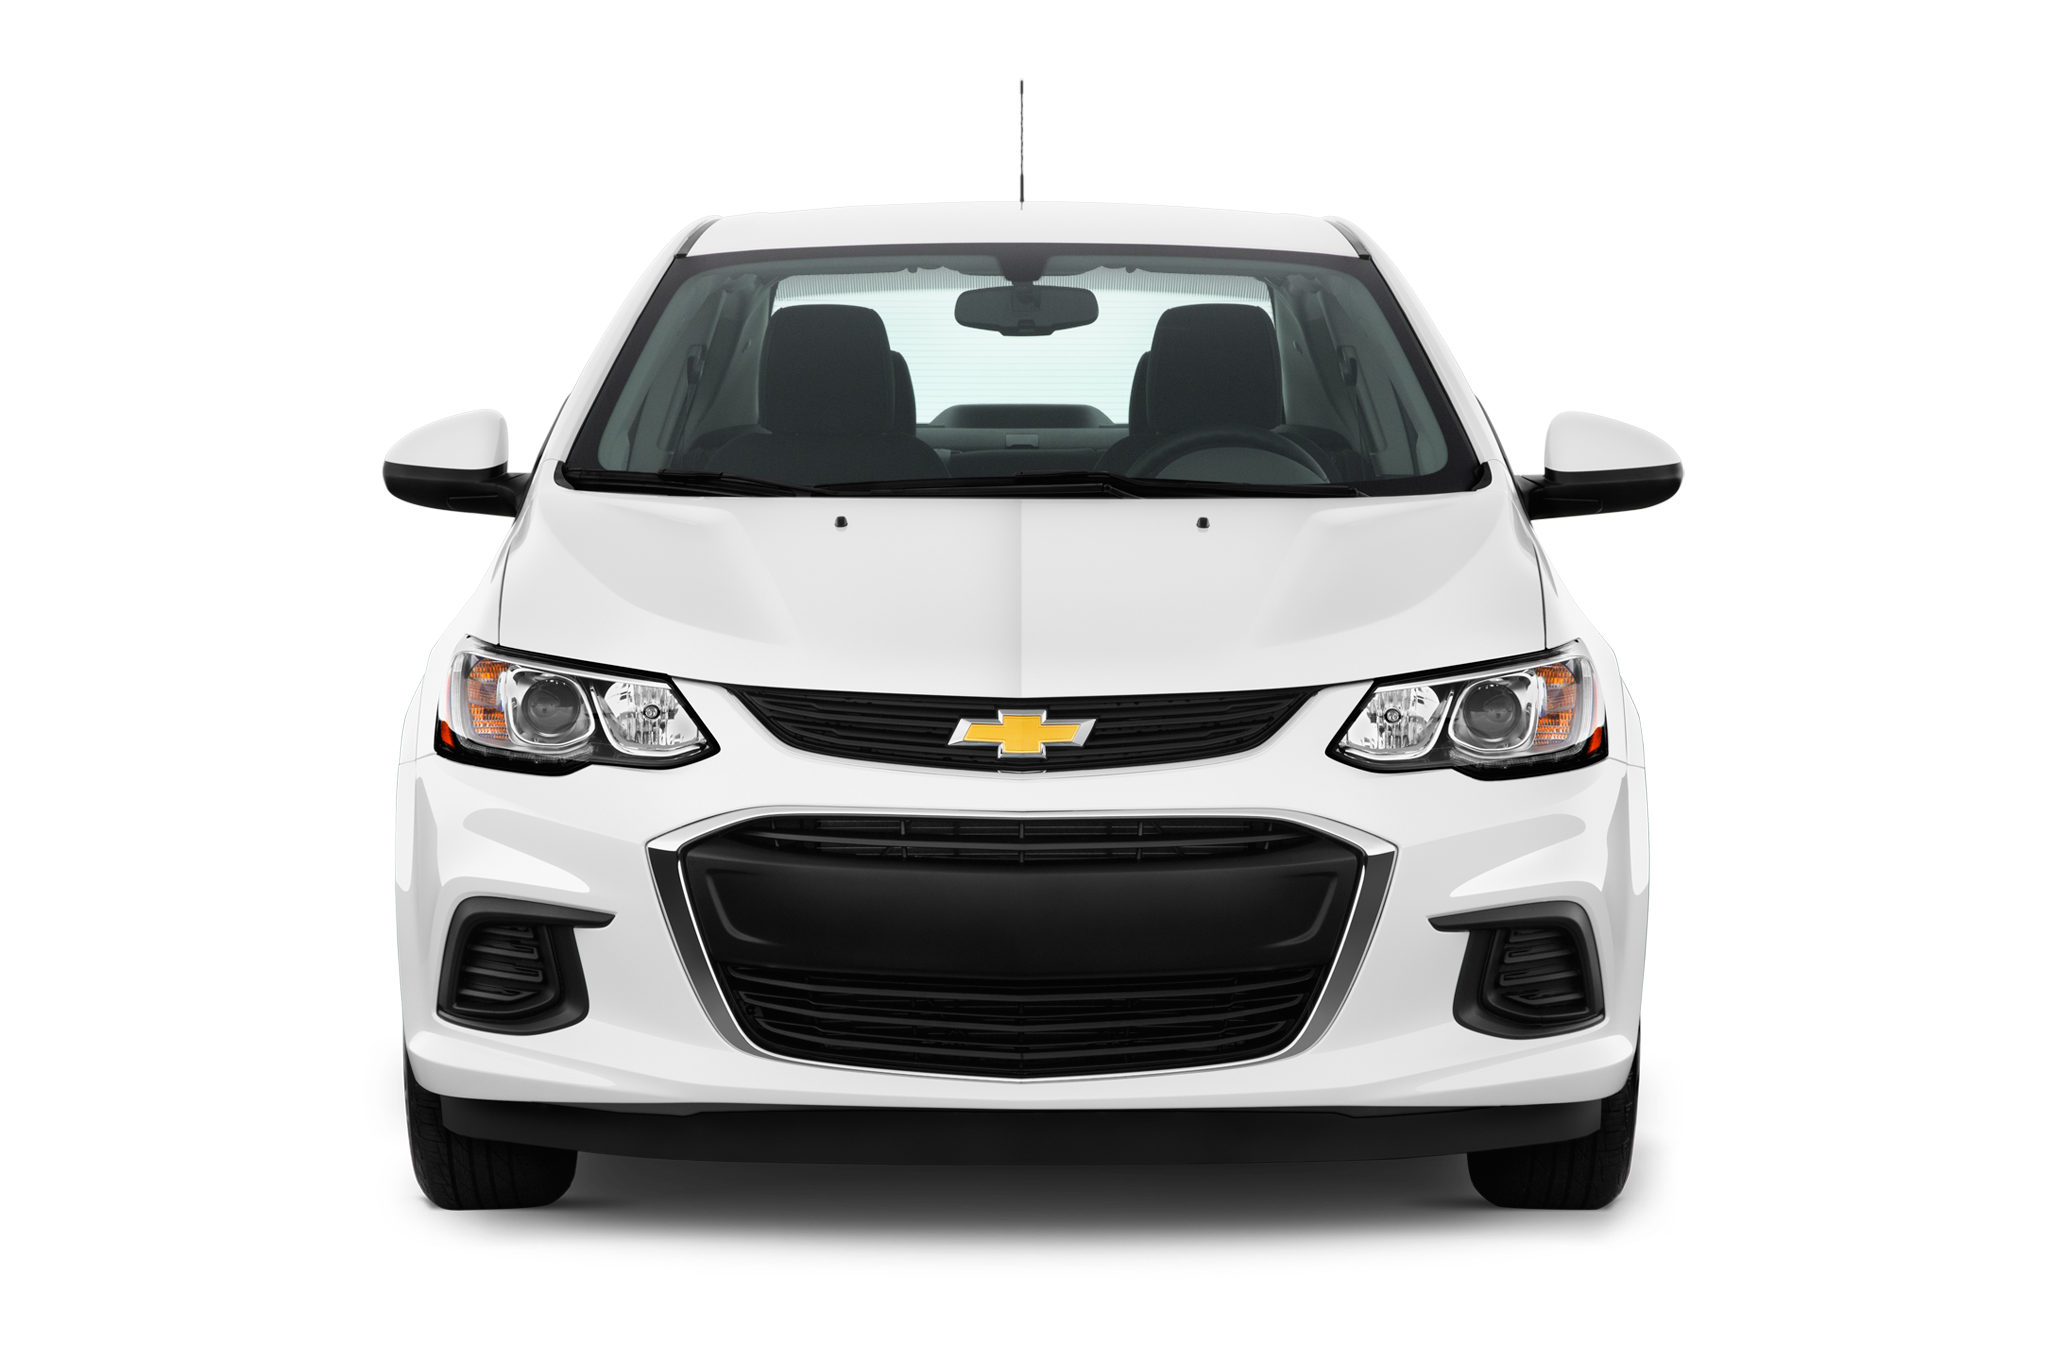 2016 chevrolet sonic reviews and ratings from consumer reports 2017 2018 car release date